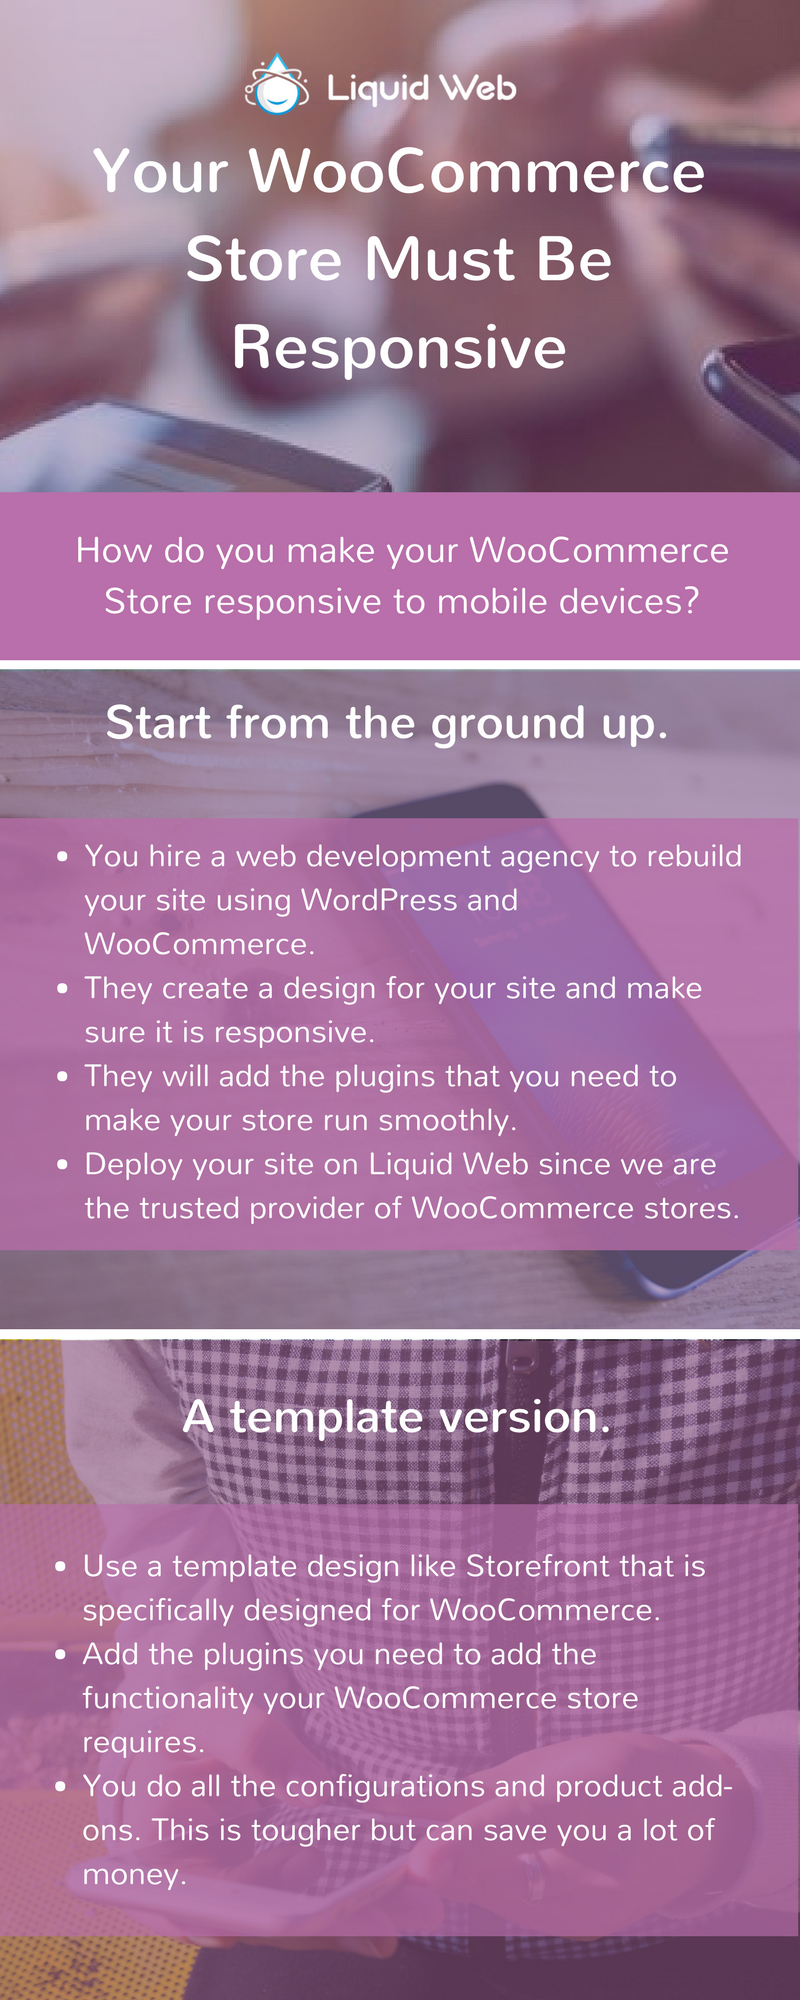 Liquid Web - Your WooCommerce Store Must Be Responsive